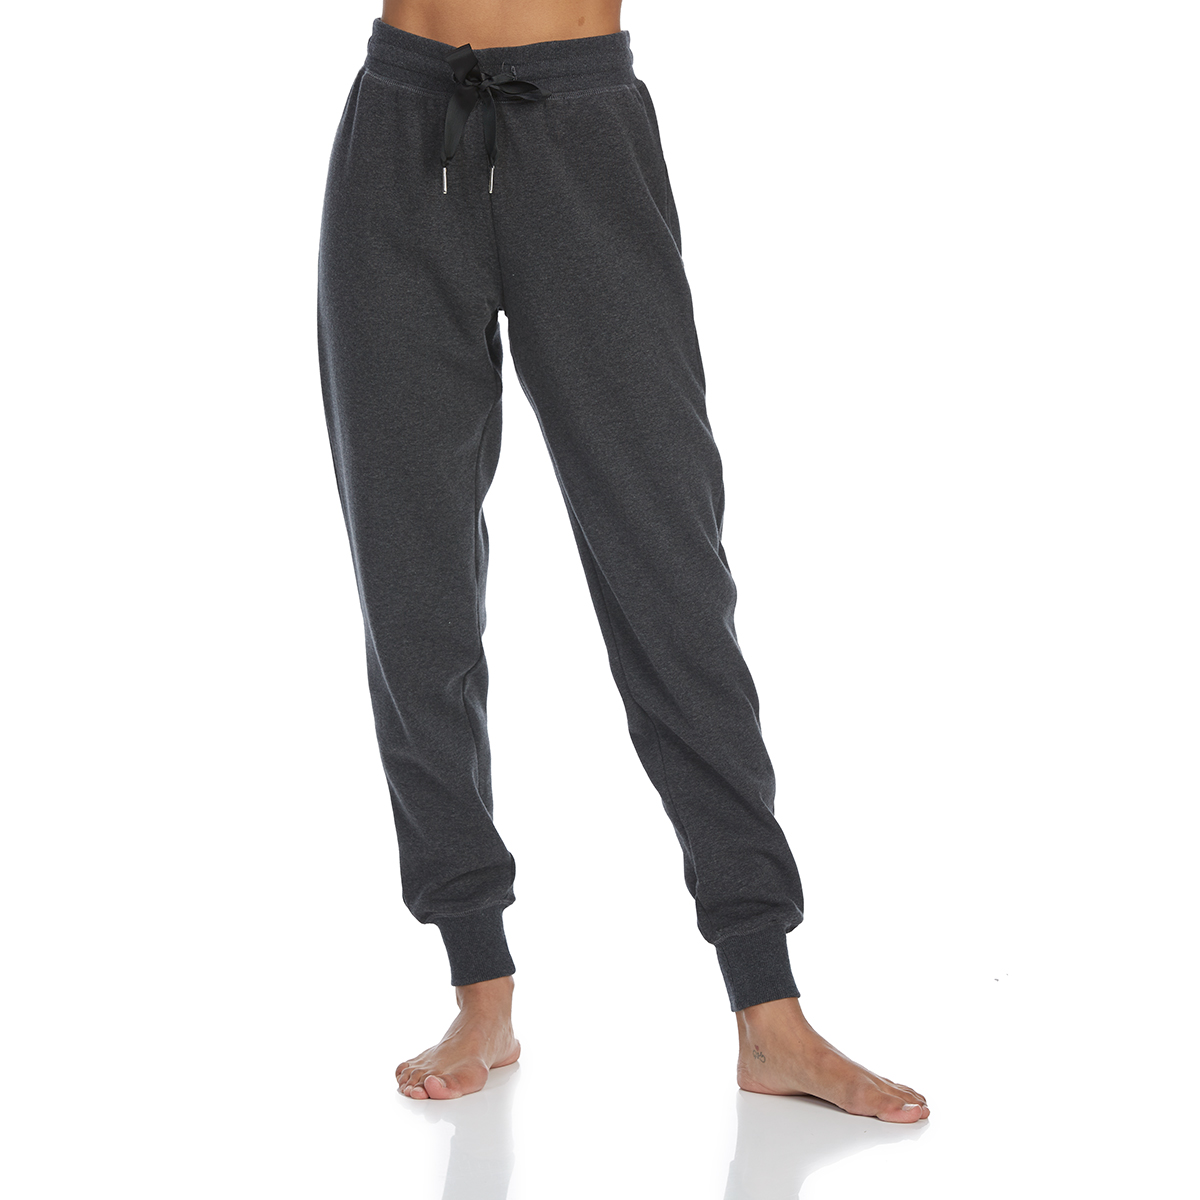 Ems Women's Canyon Jogger Pants - Black, L